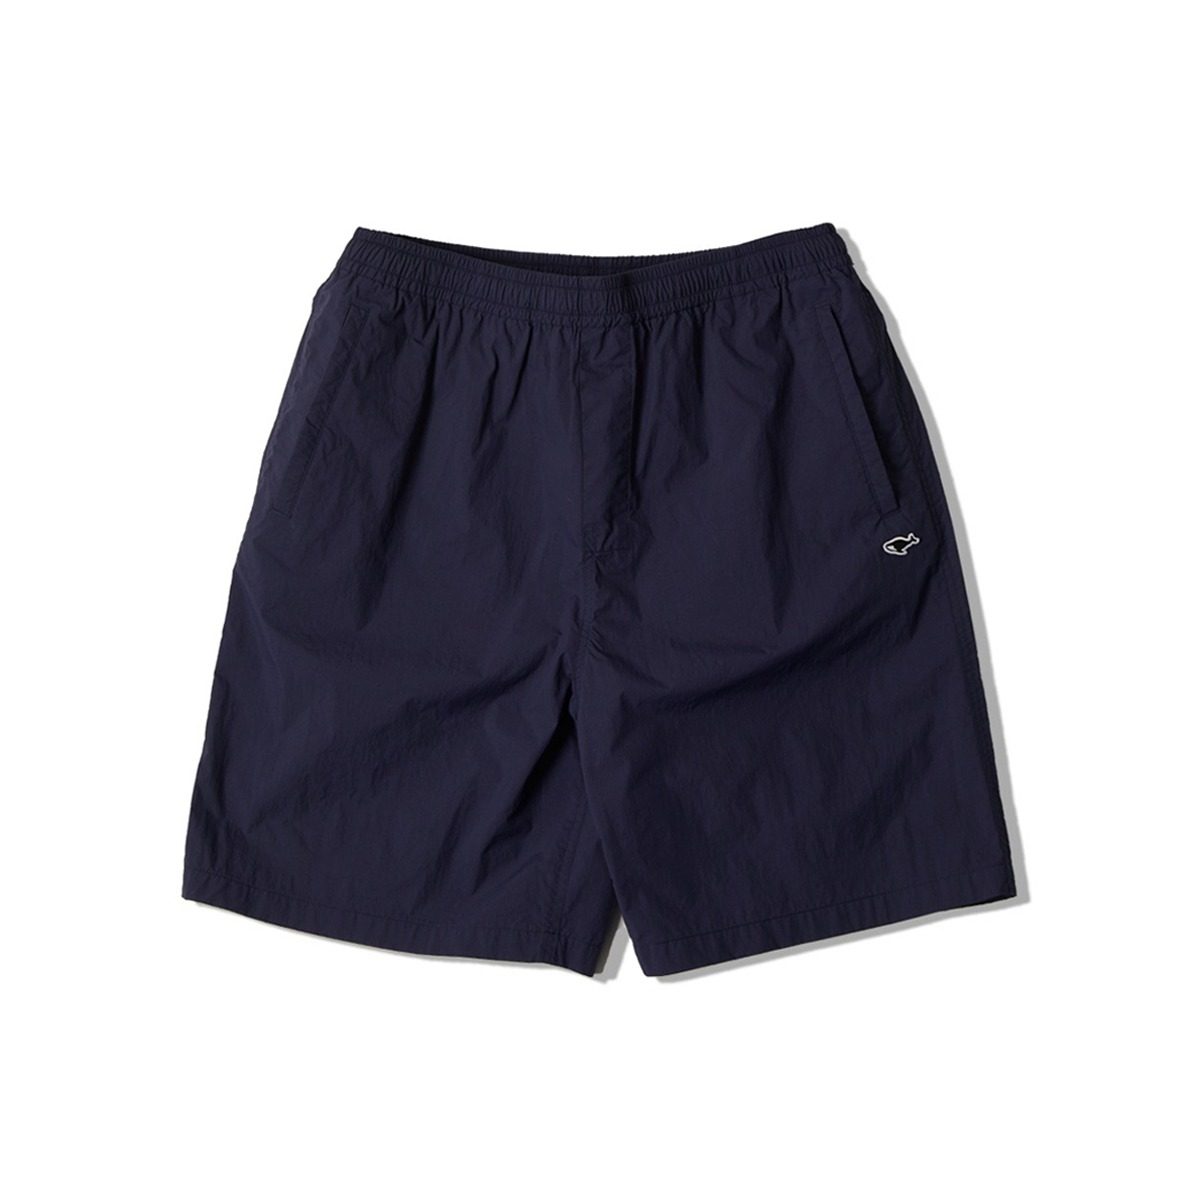 [NEITHERS] S MEDICAL SHORTS 'NAVY'